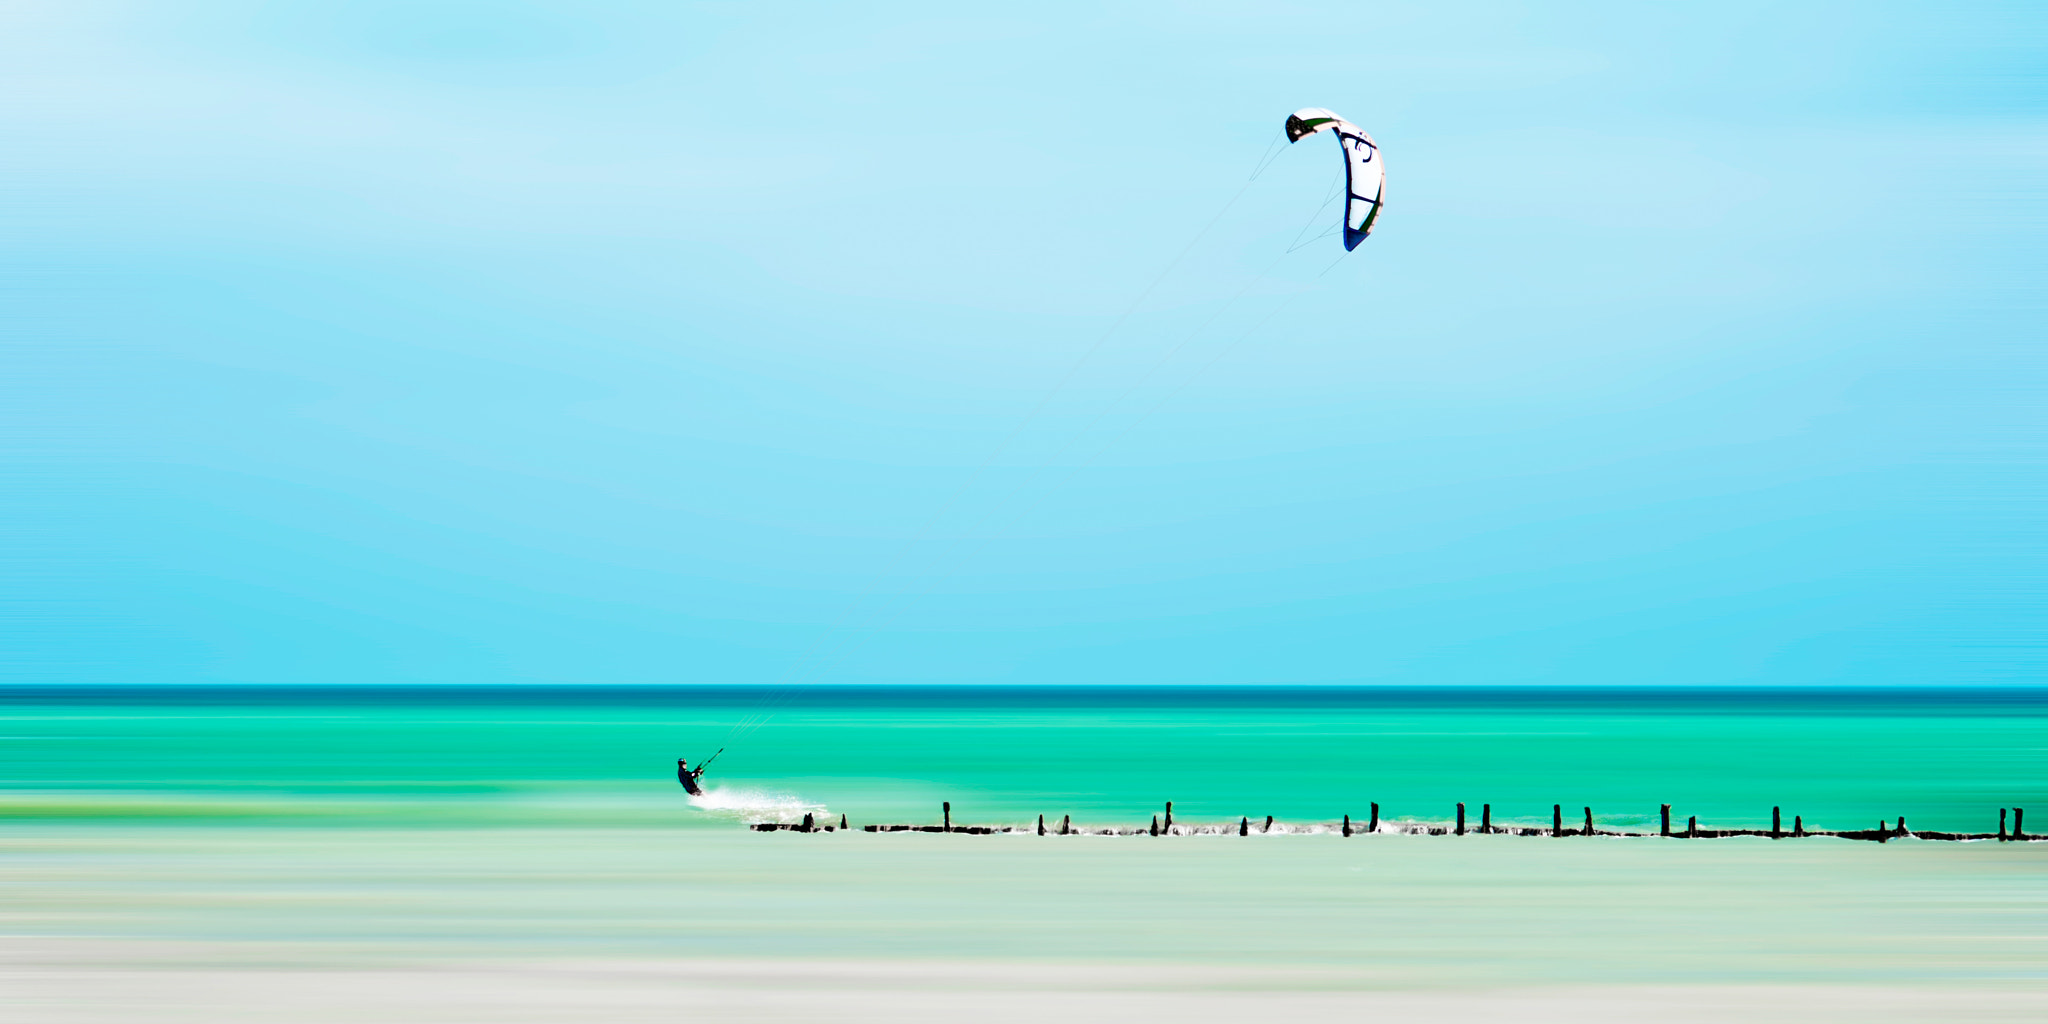 Photograph the kiter by hannes cmarits on 500px